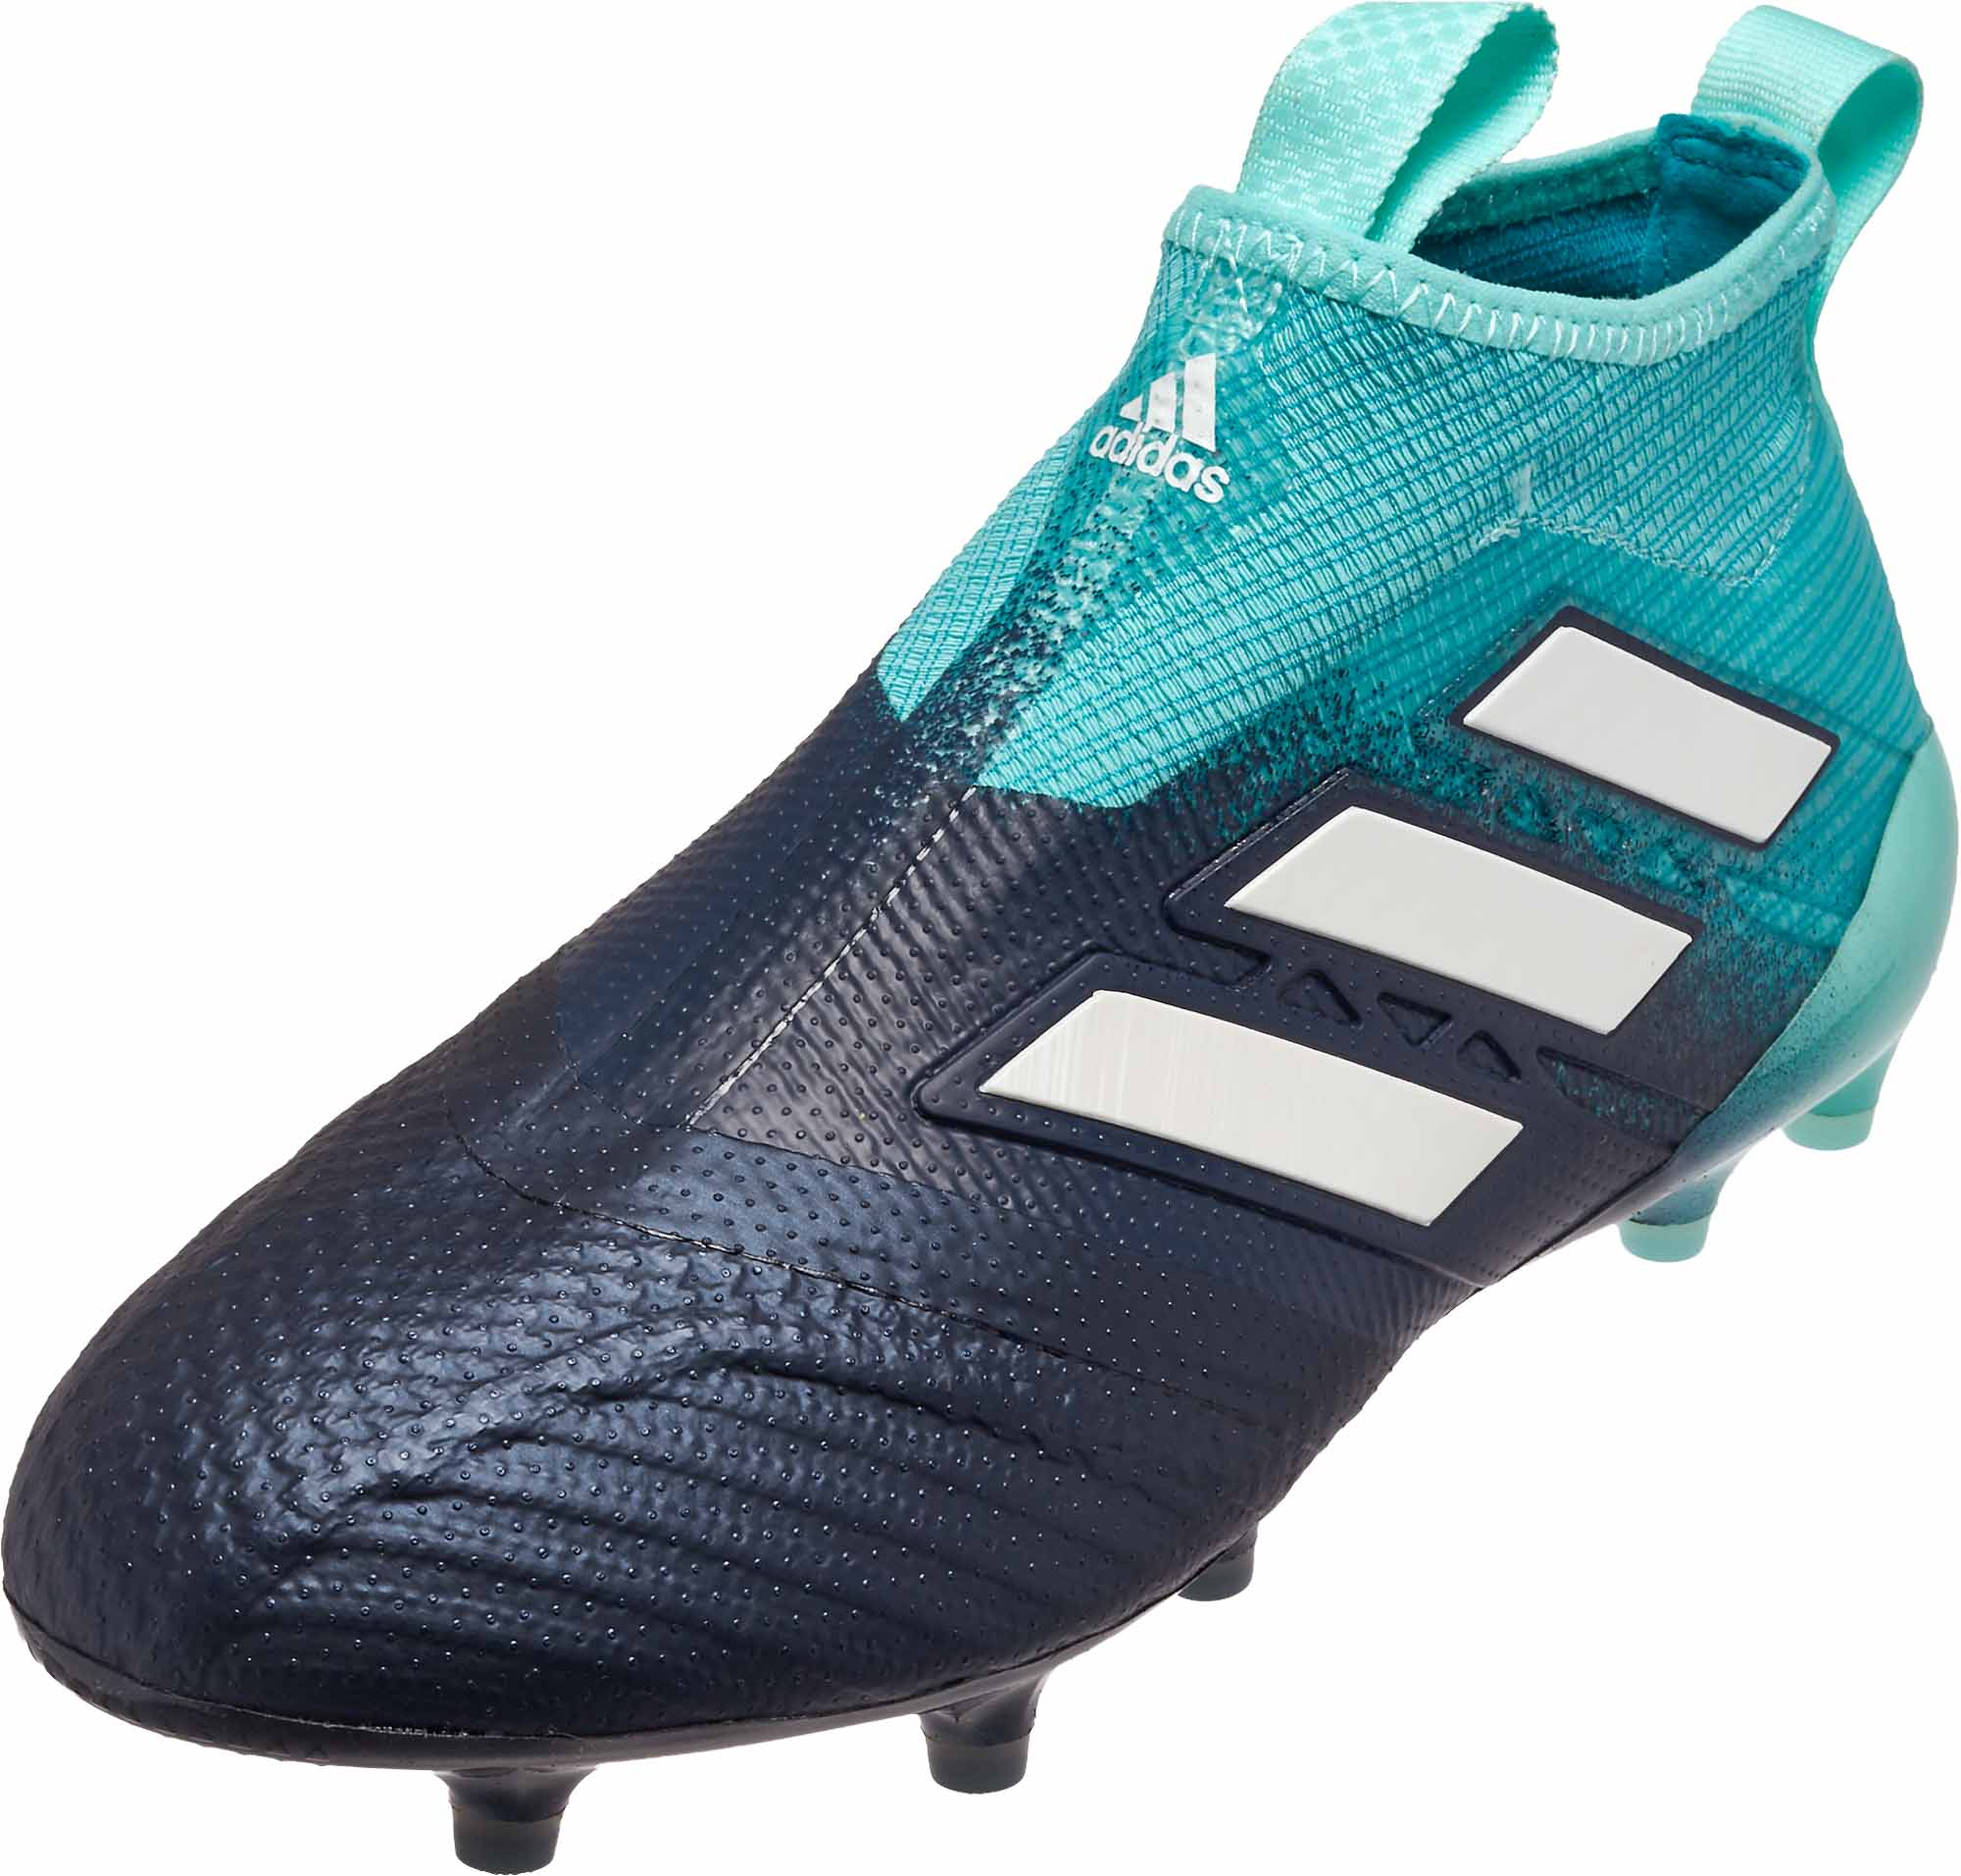 adidas cleats adidas ace 17+ purecontrol fg - energy aqua/legend ink GLZSNXC